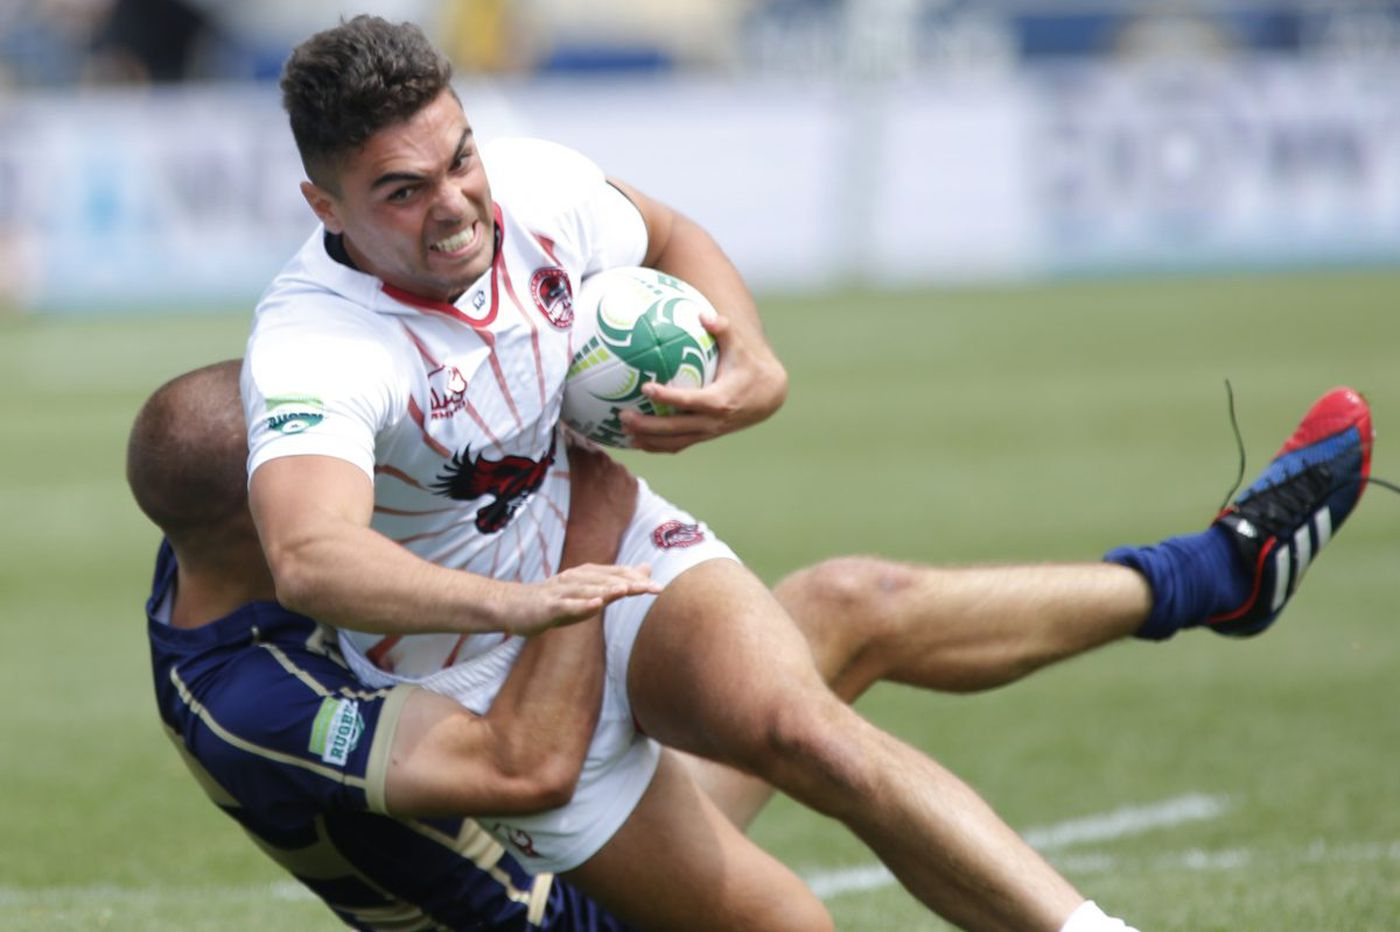 St. Joseph's men play underdog role in Chester rugby tournament